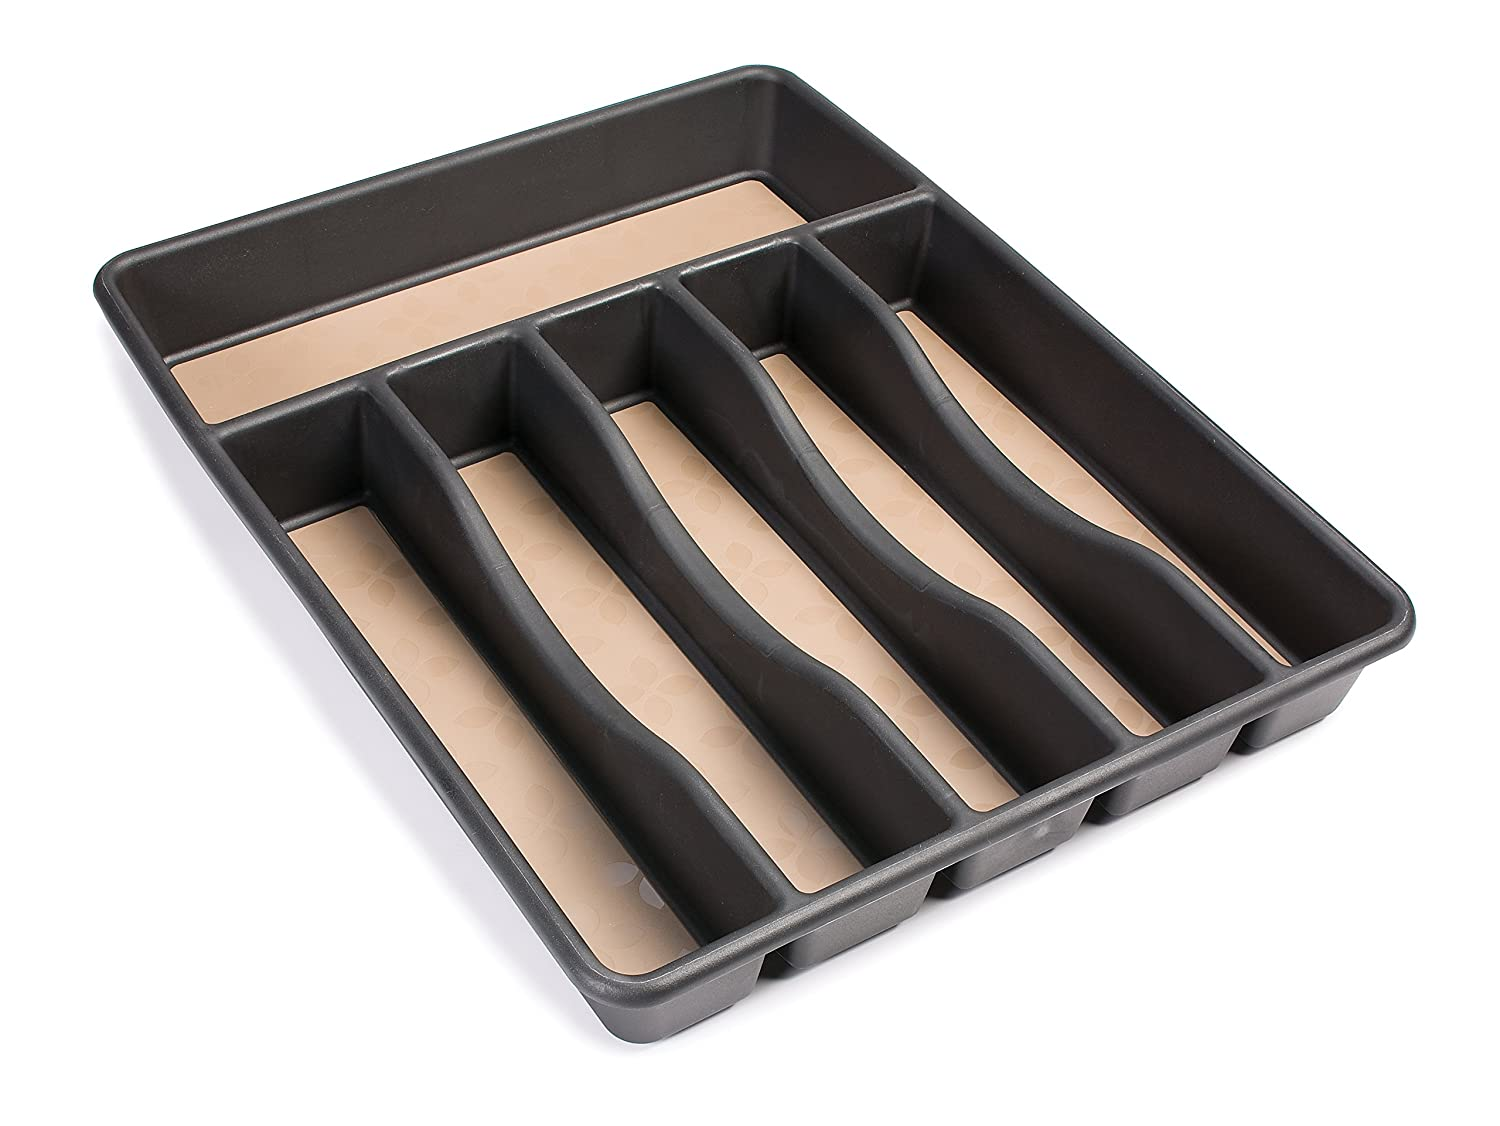 amazoncom rubbermaid noslip cutlery tray large black with tan flatware trays serving trays